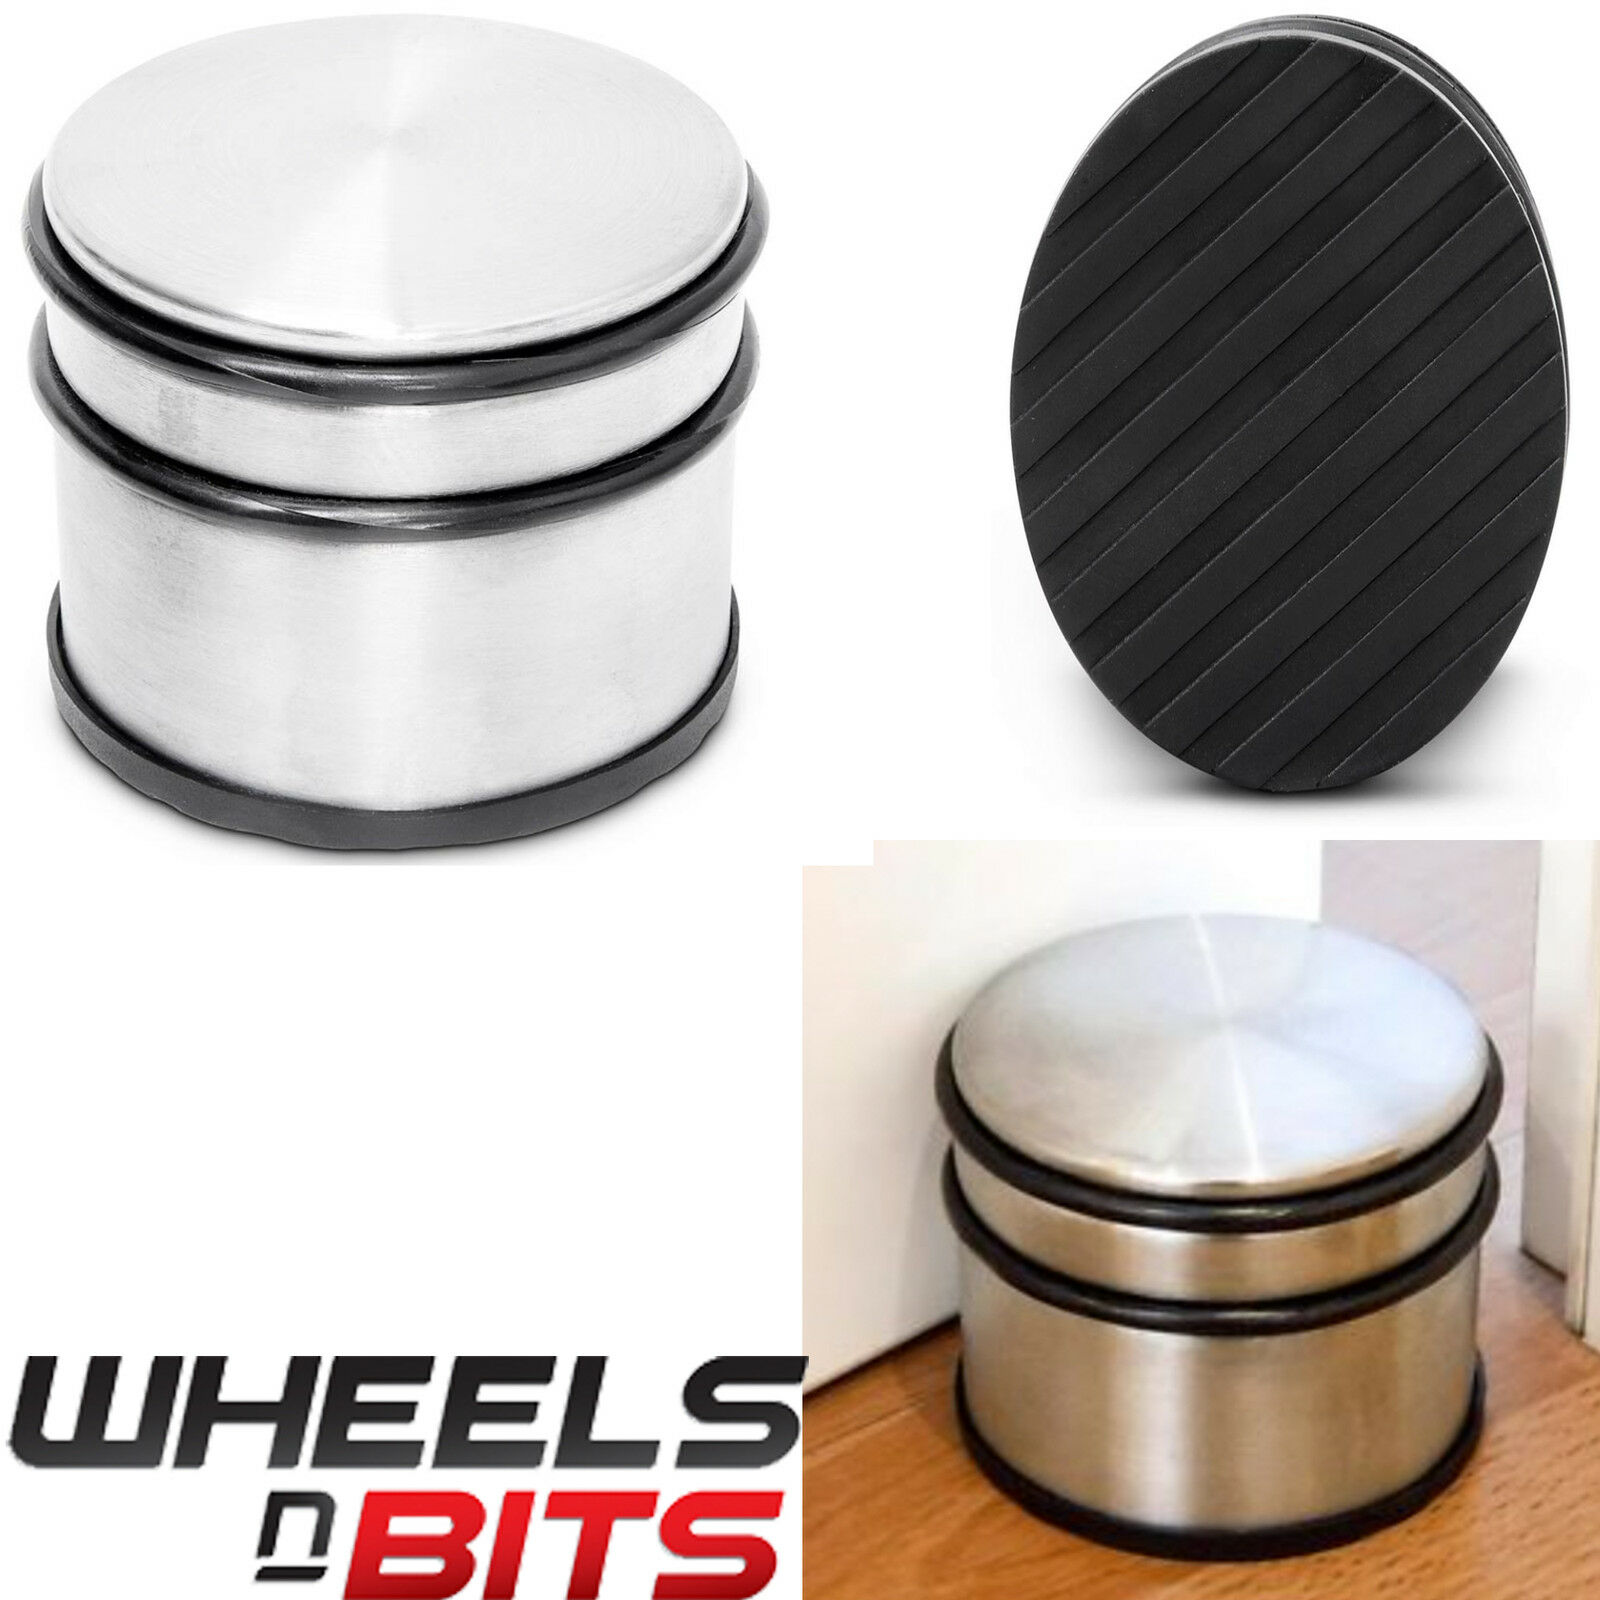 4 x STAINLESS STEEL & RUBBER DOOR STOP HIGH QUALITY BRUSHED CHROME 1.1kg WEIGHT